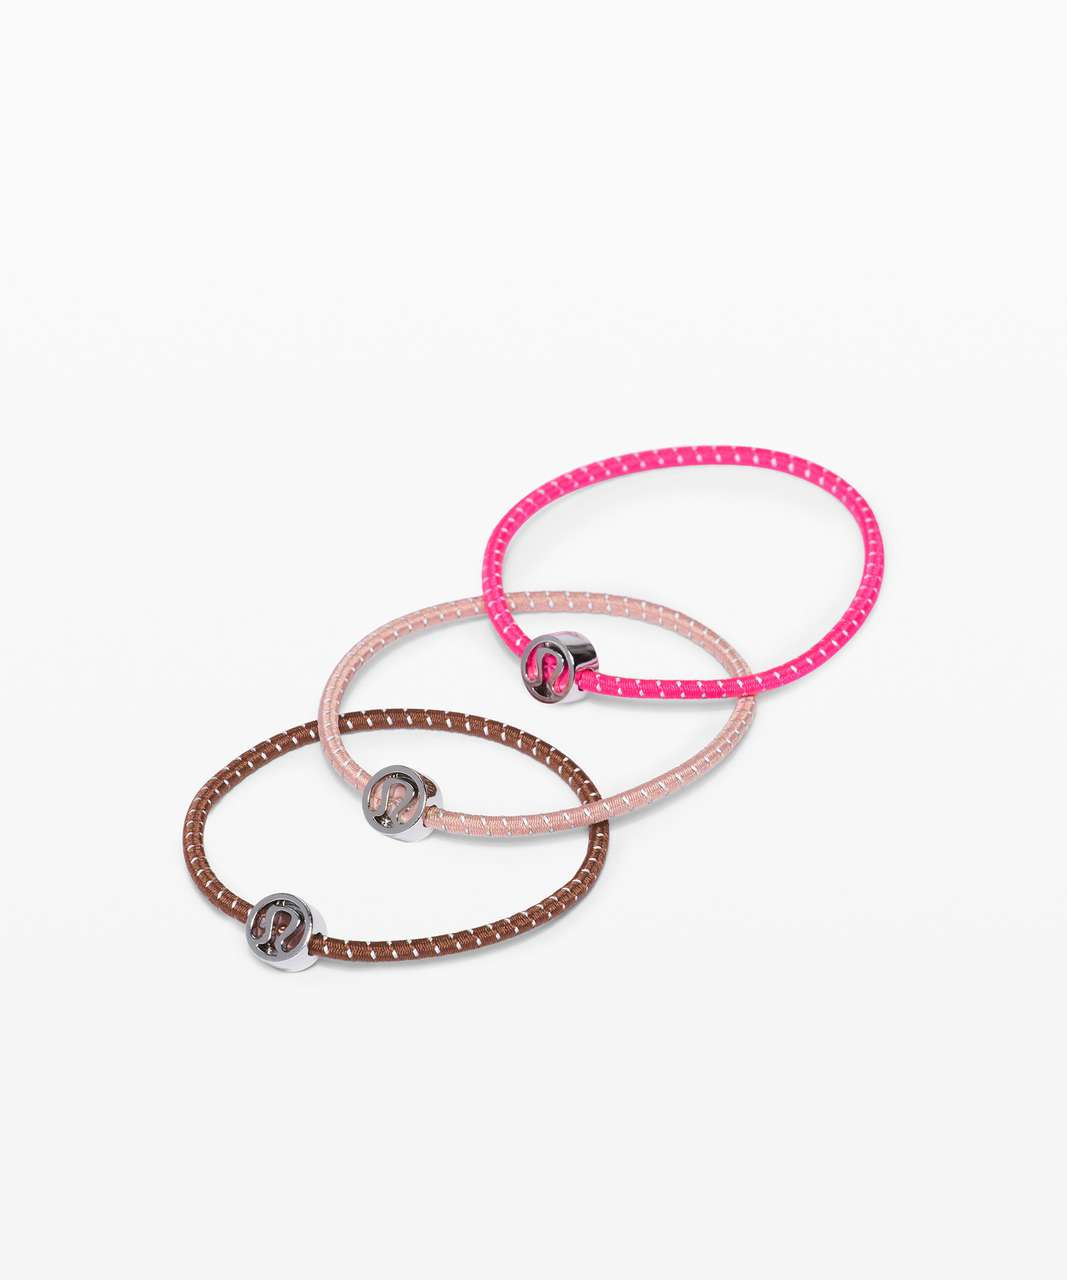 Lululemon Glow On Hair Ties - Ancient Copper / Pink Pastel / Highlight Pink